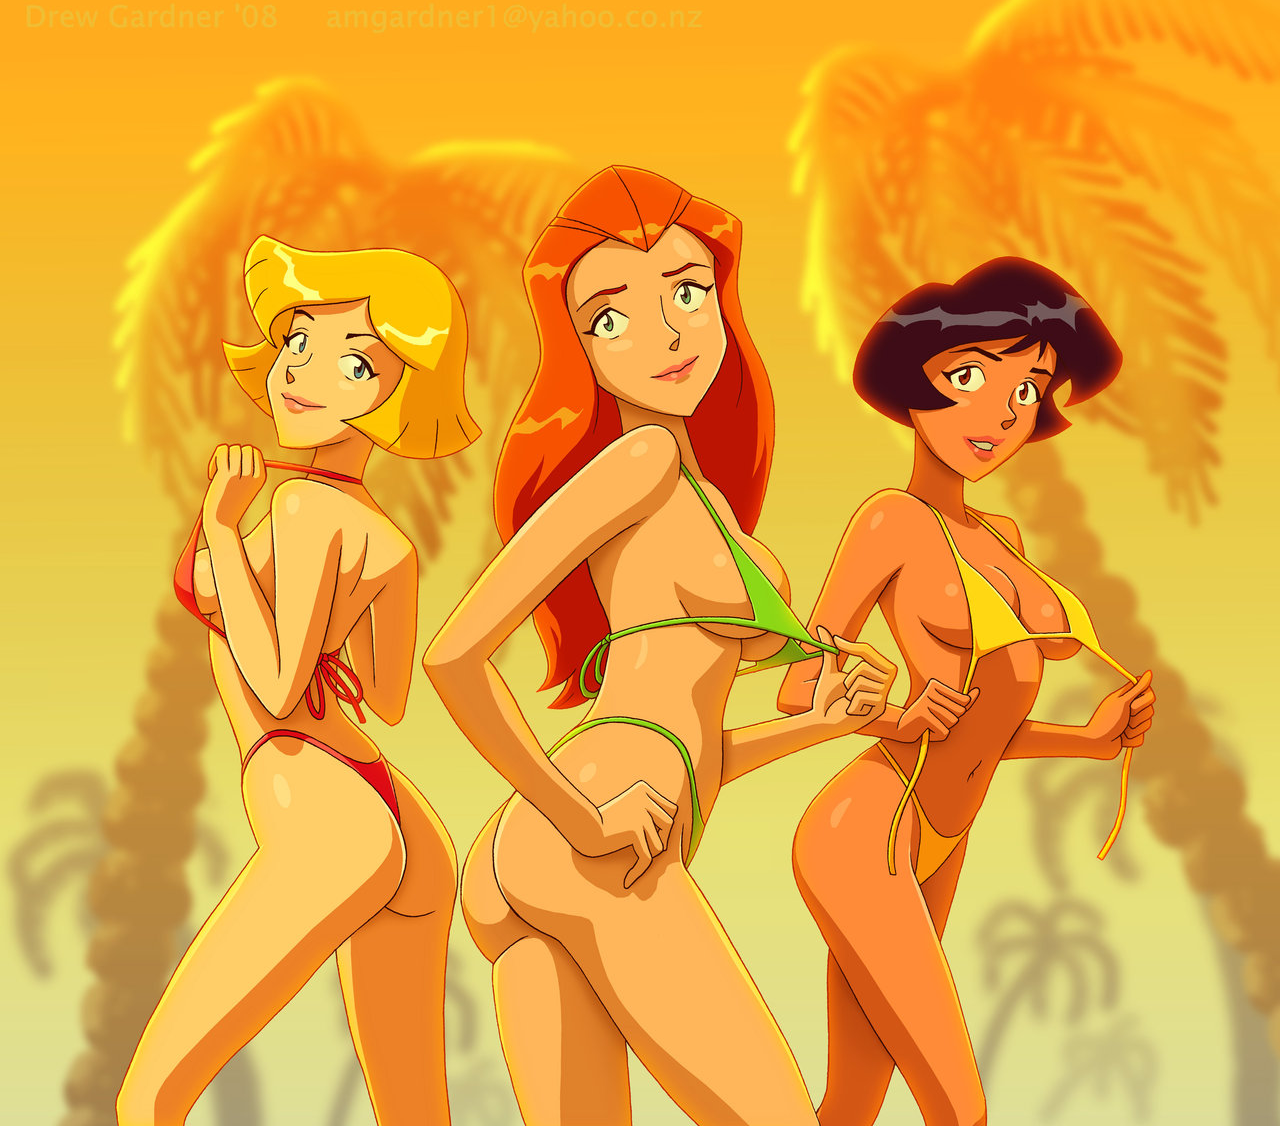 alex ass bikini breasts clover drew_gardner drew_gardner_(artist) sam string_bikini totally_spies